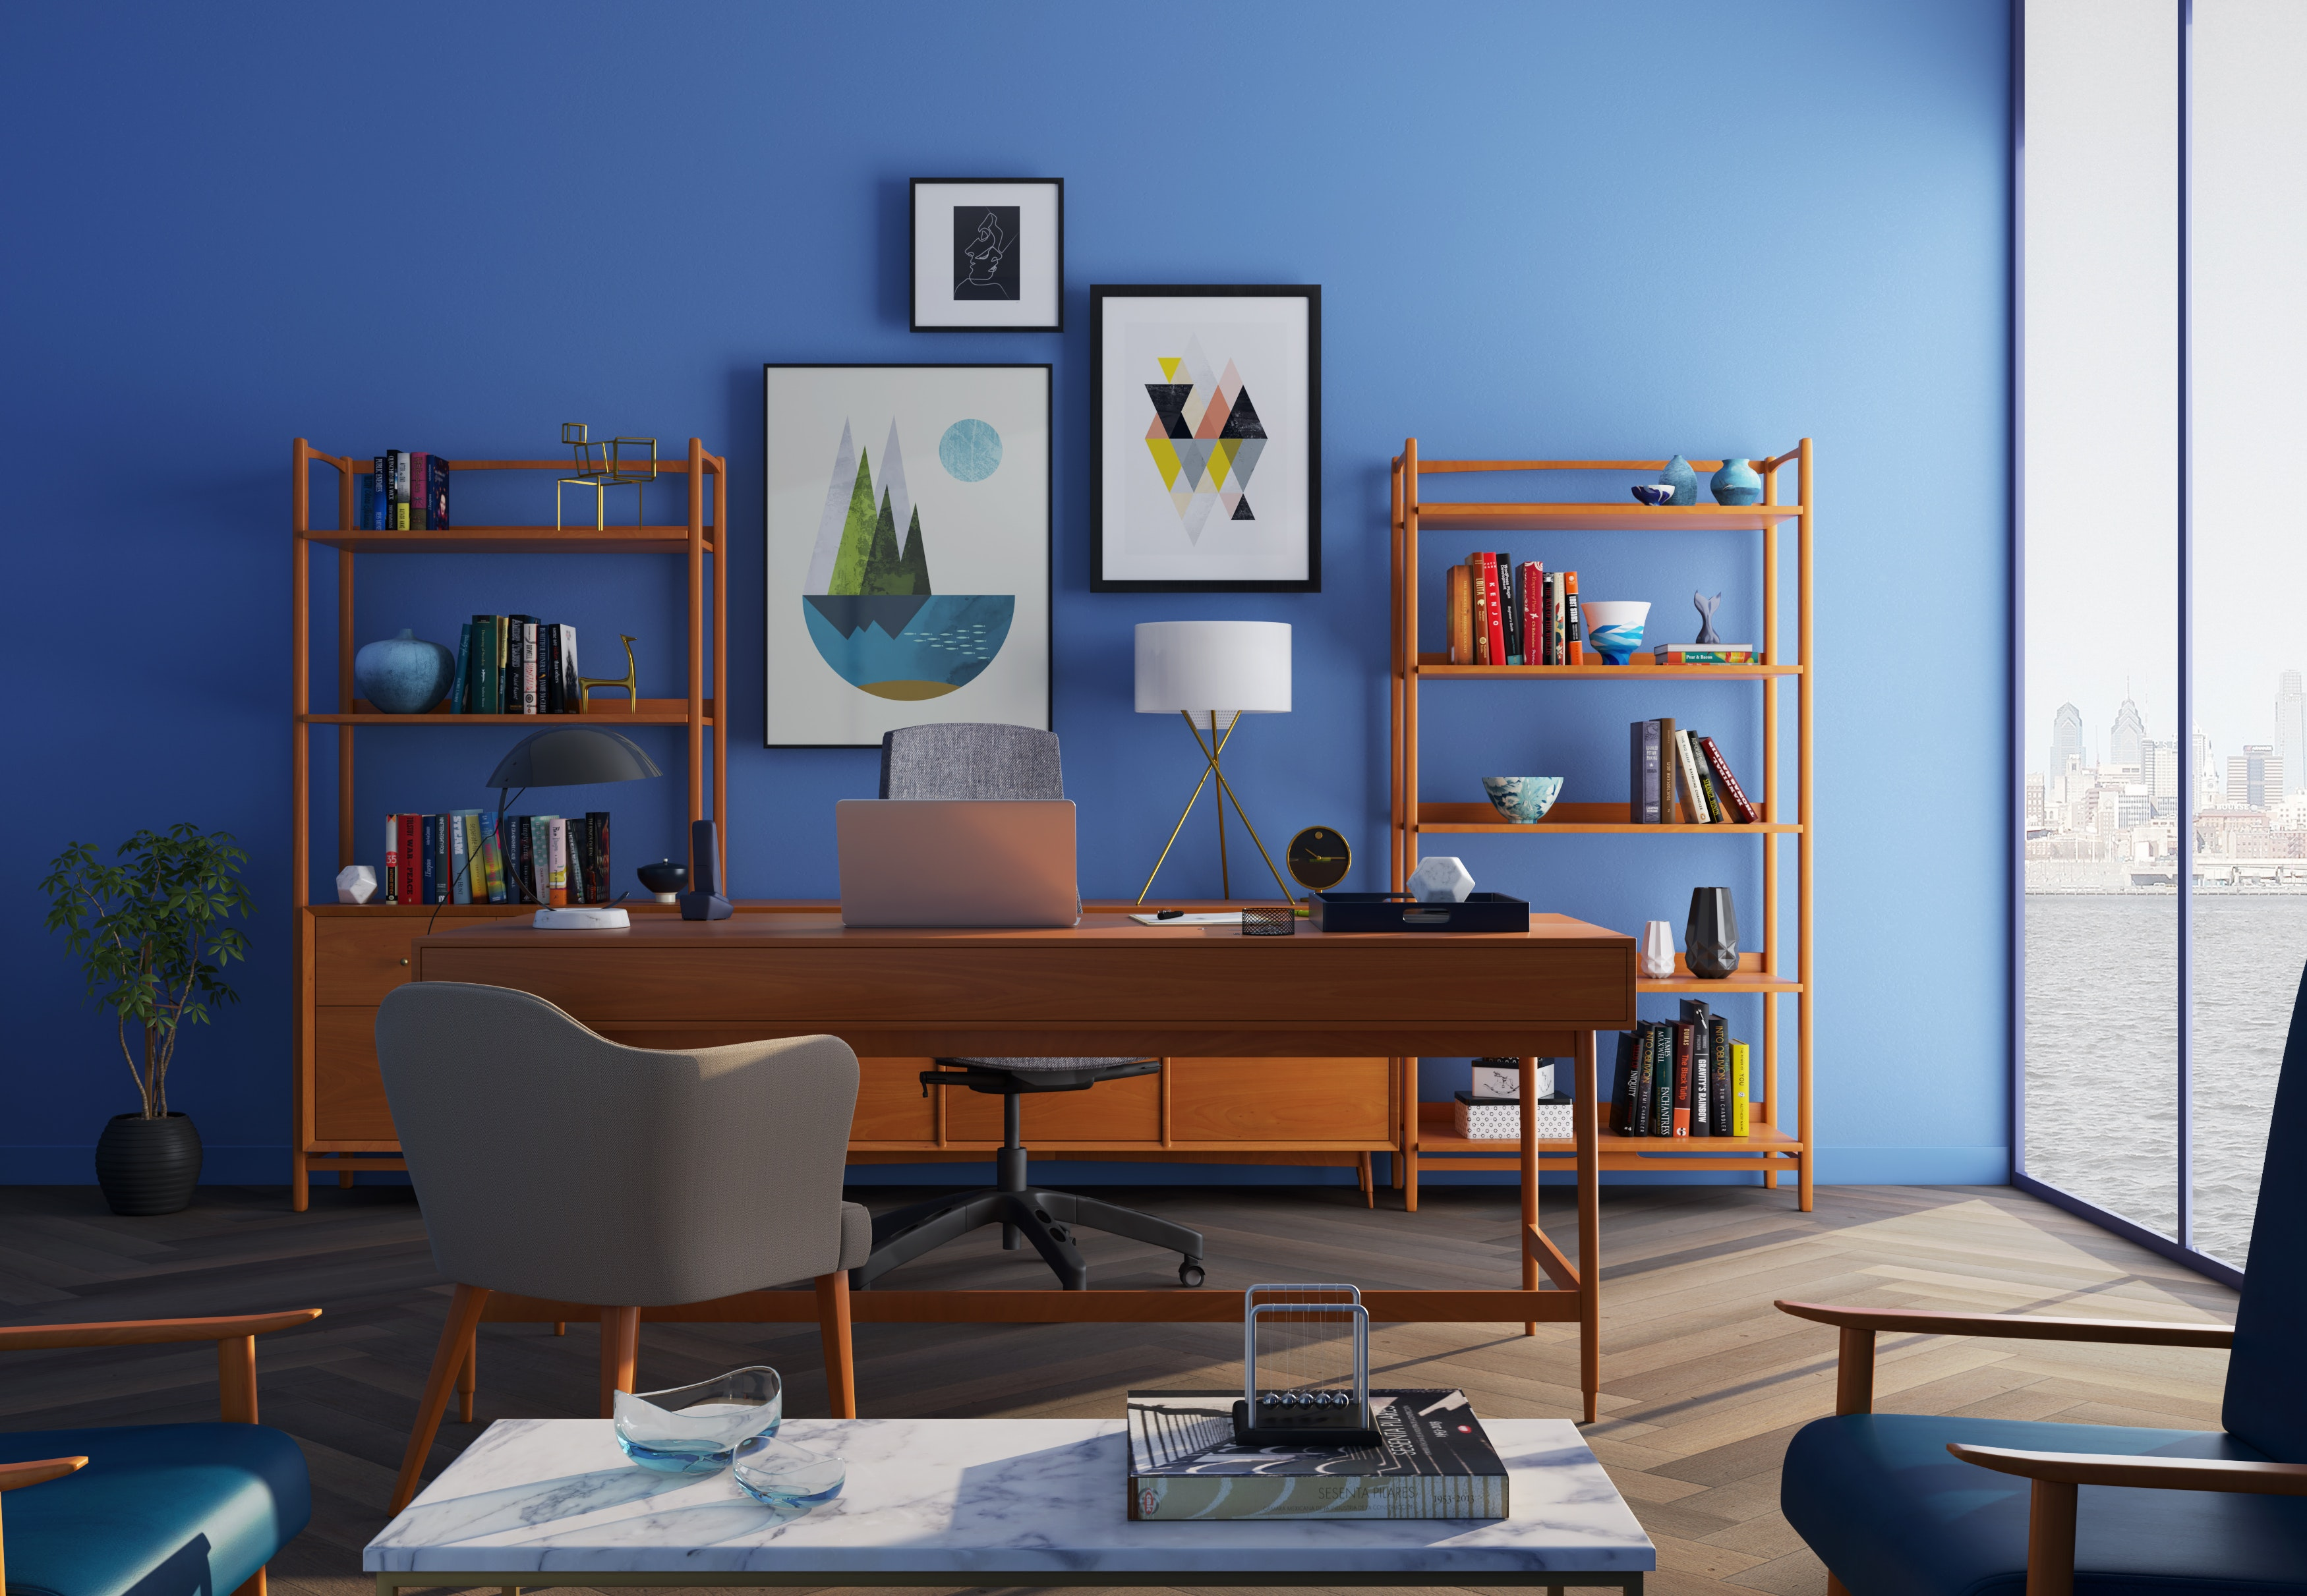 Our Beginners guide in interior design & decorating enables you to create this small home office as well